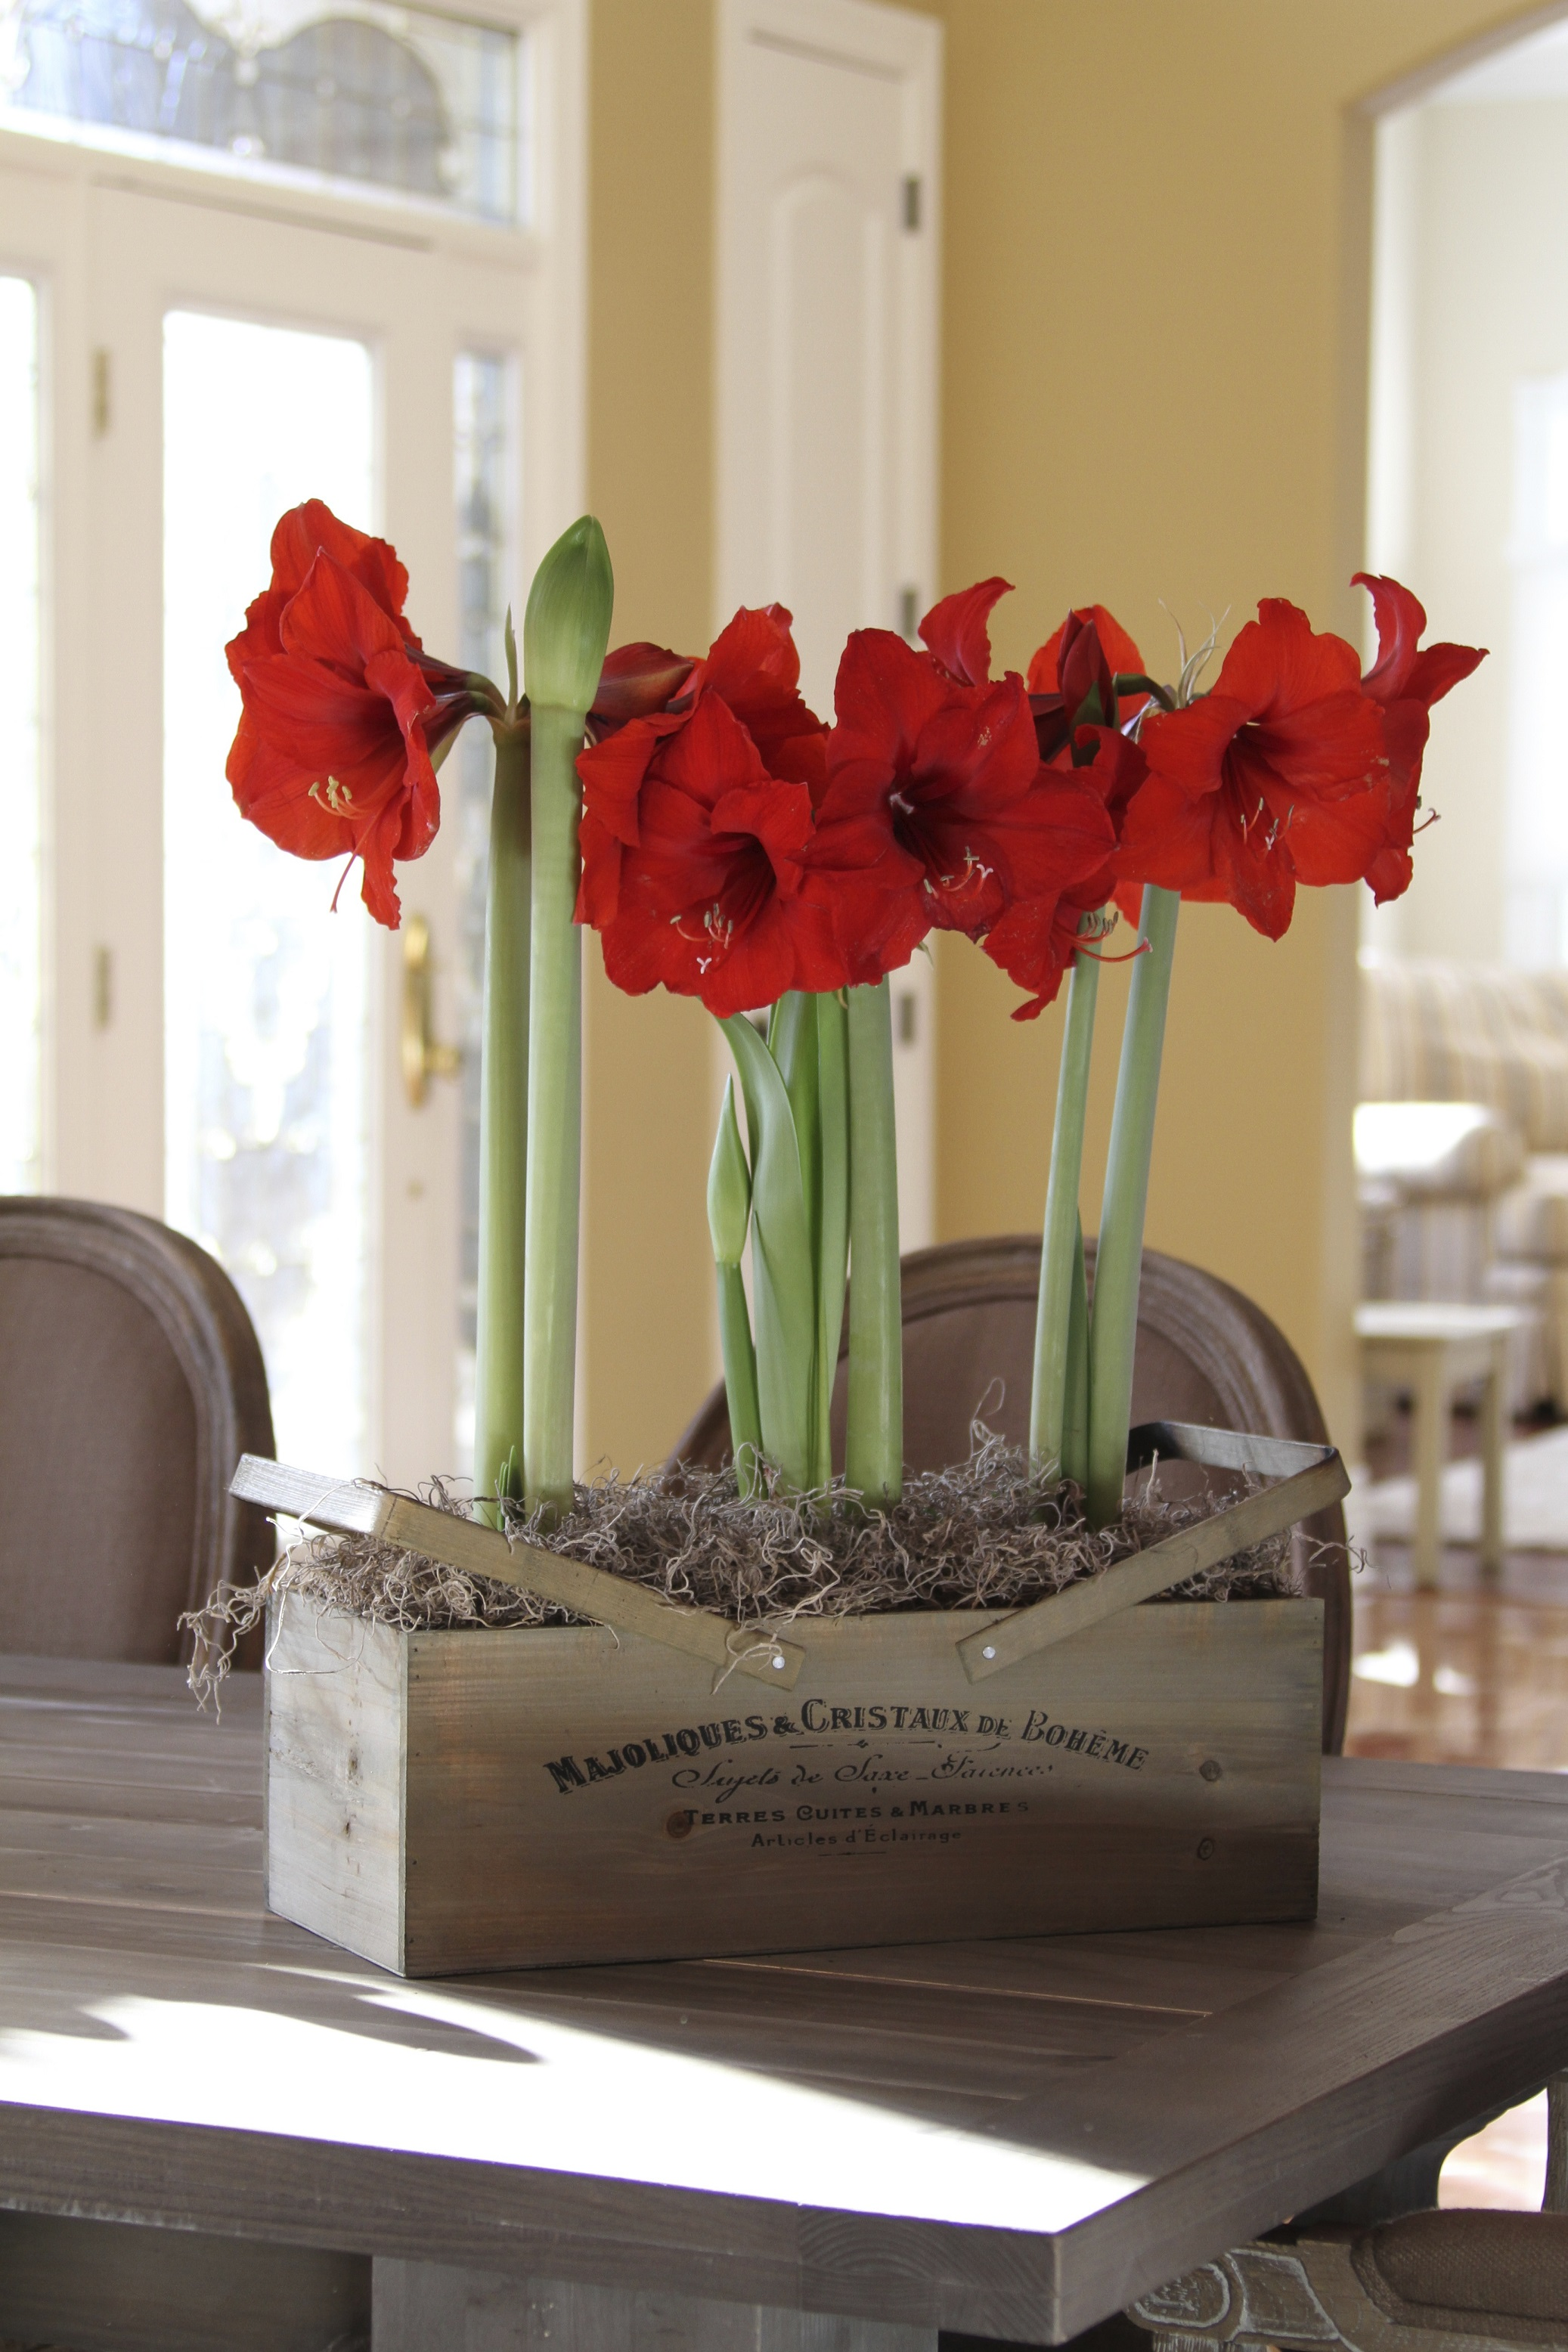 amaryllis gift kit from longfield gardens